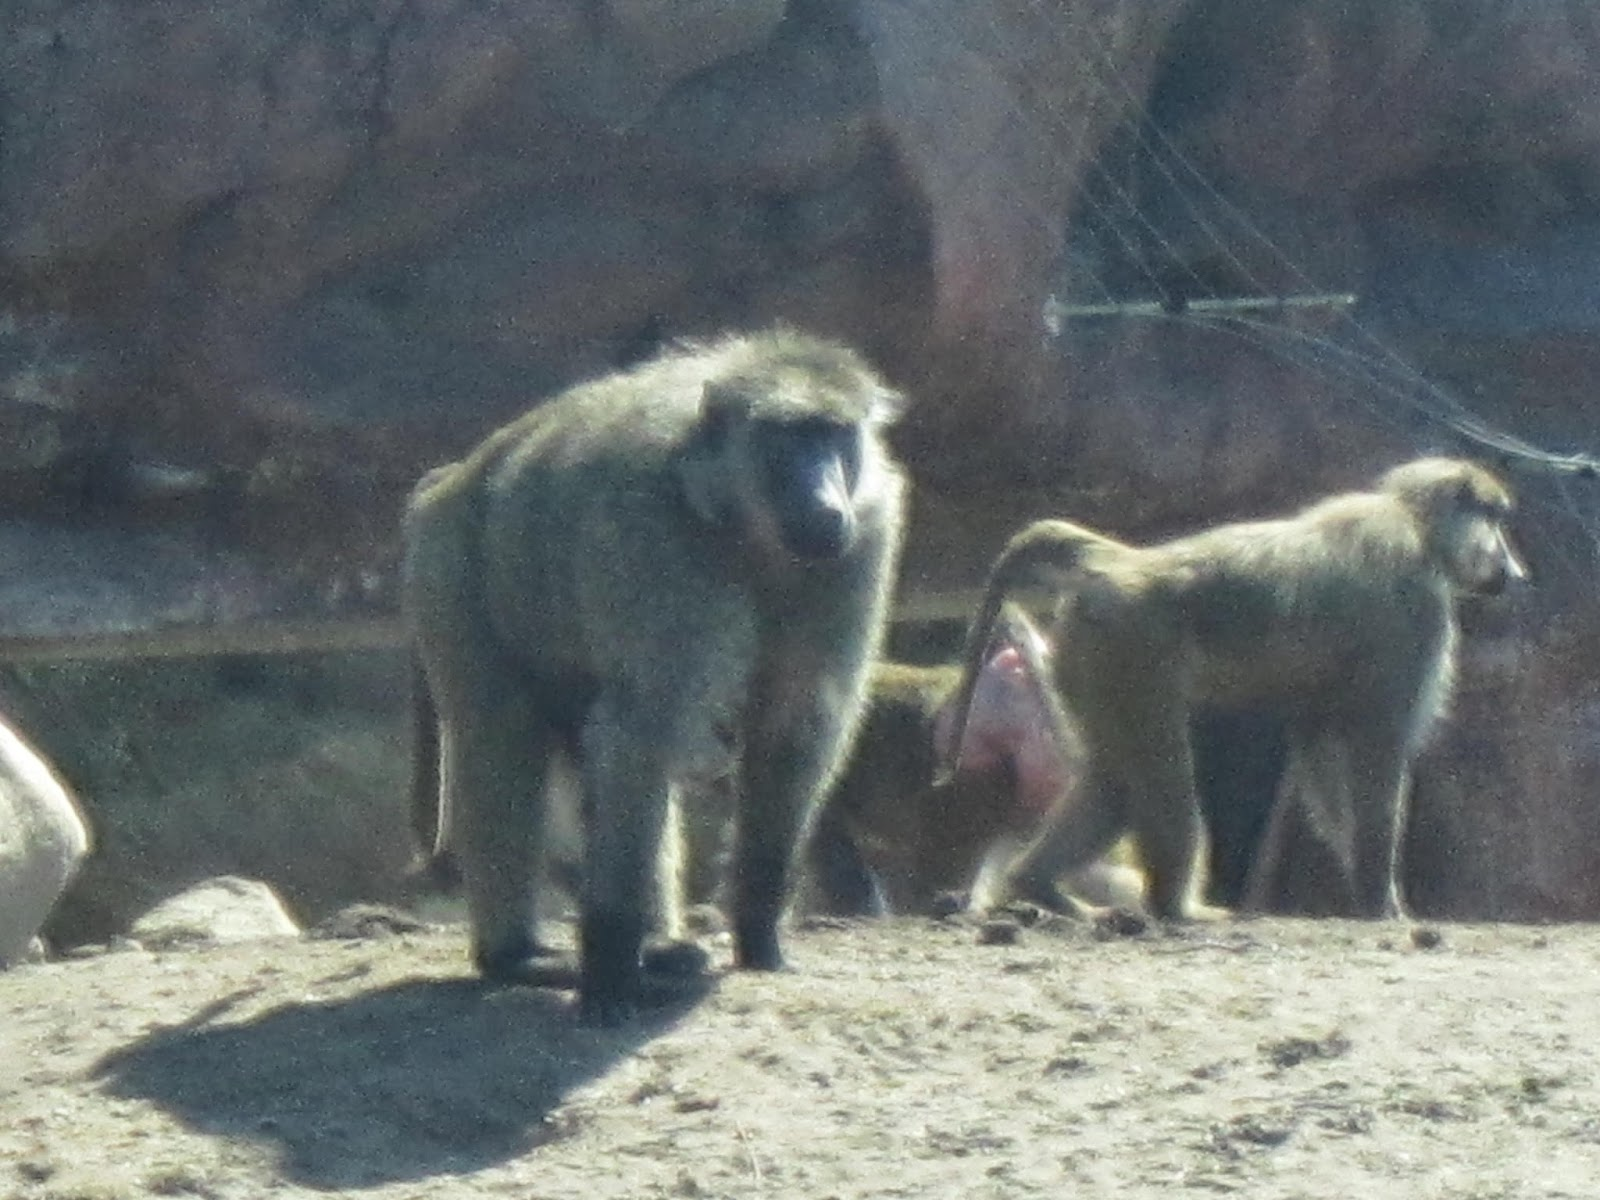 baboons, zoo, Toronto Zoo, animals, animal photography